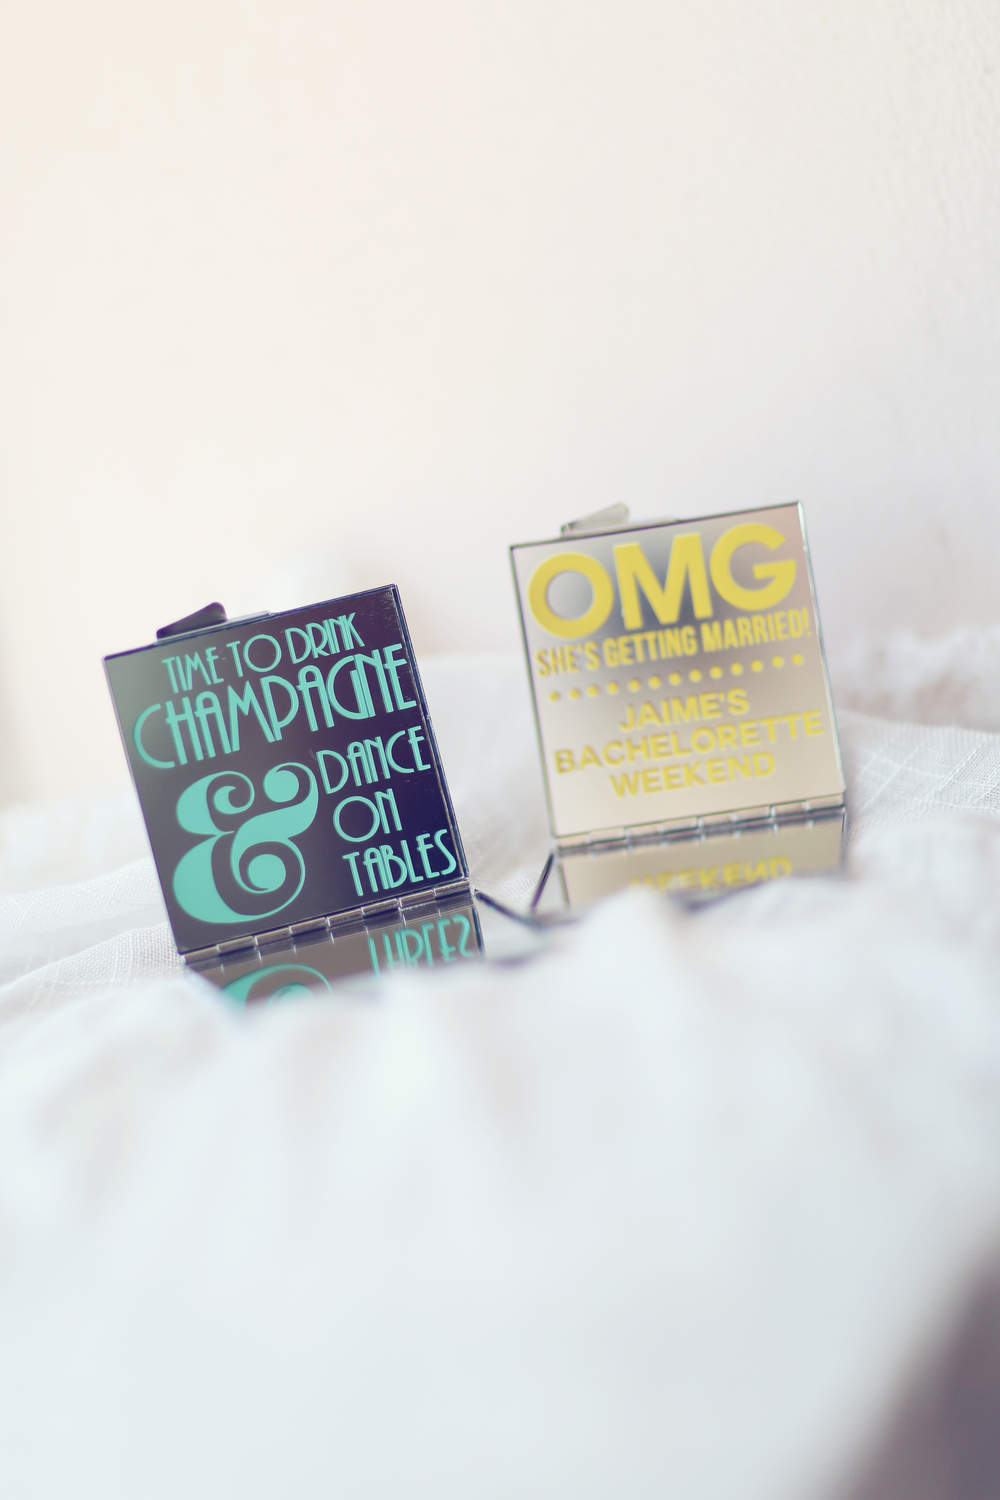 Blue Penguin Shop Mirrors // The Overwhelmed Bride Wedding Blog + Southern California Wedding Planner